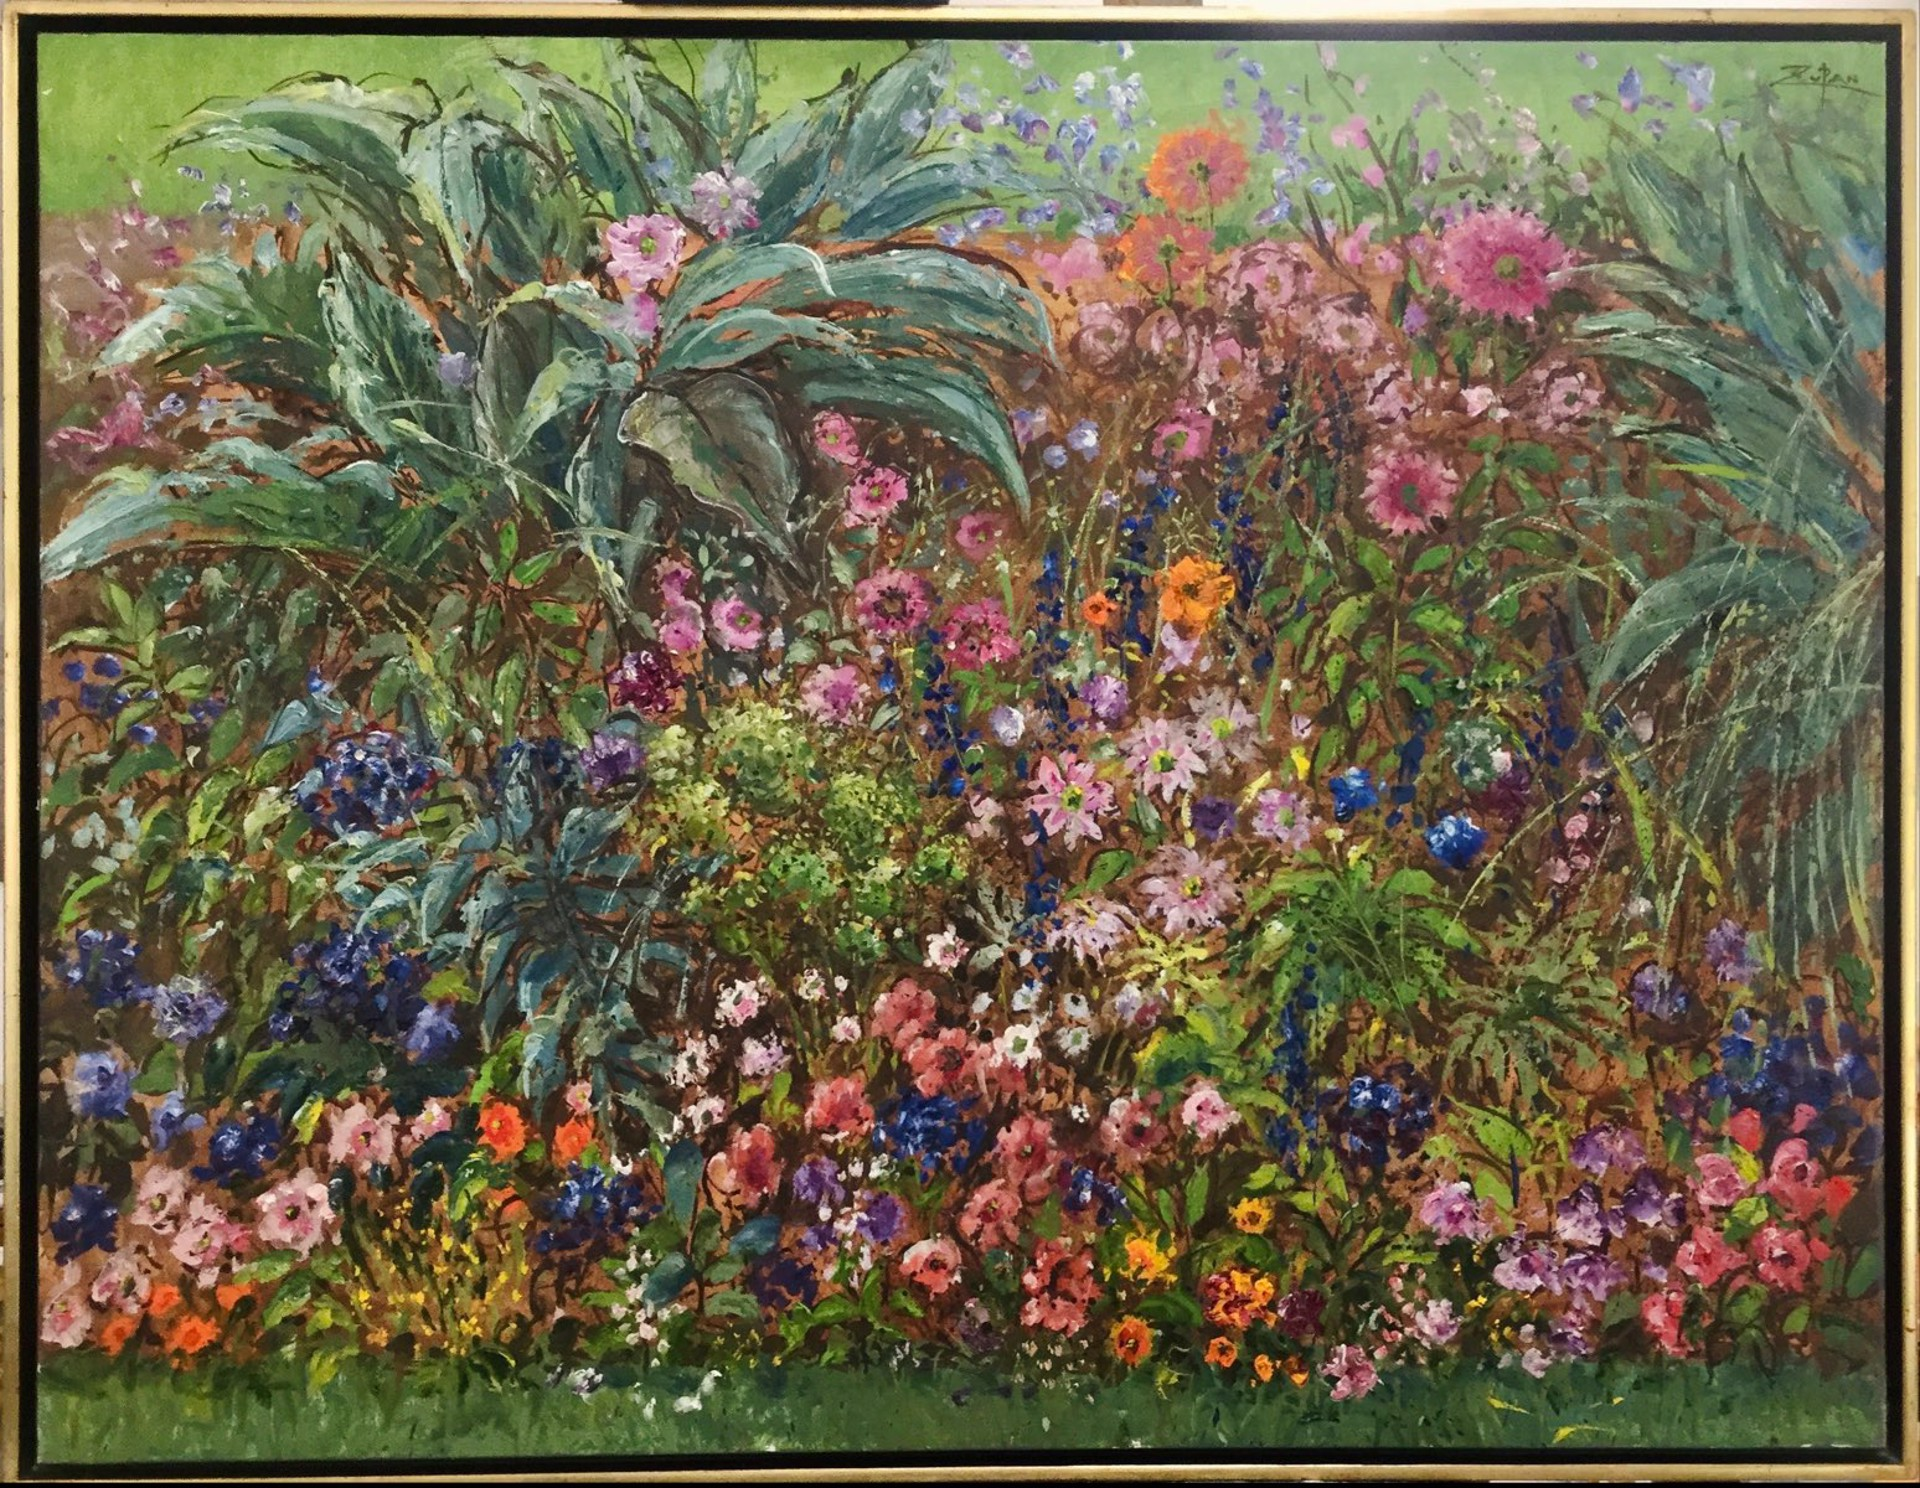 Botanical Study in Luxembourg Gardens, Paris by Bruno Zupan